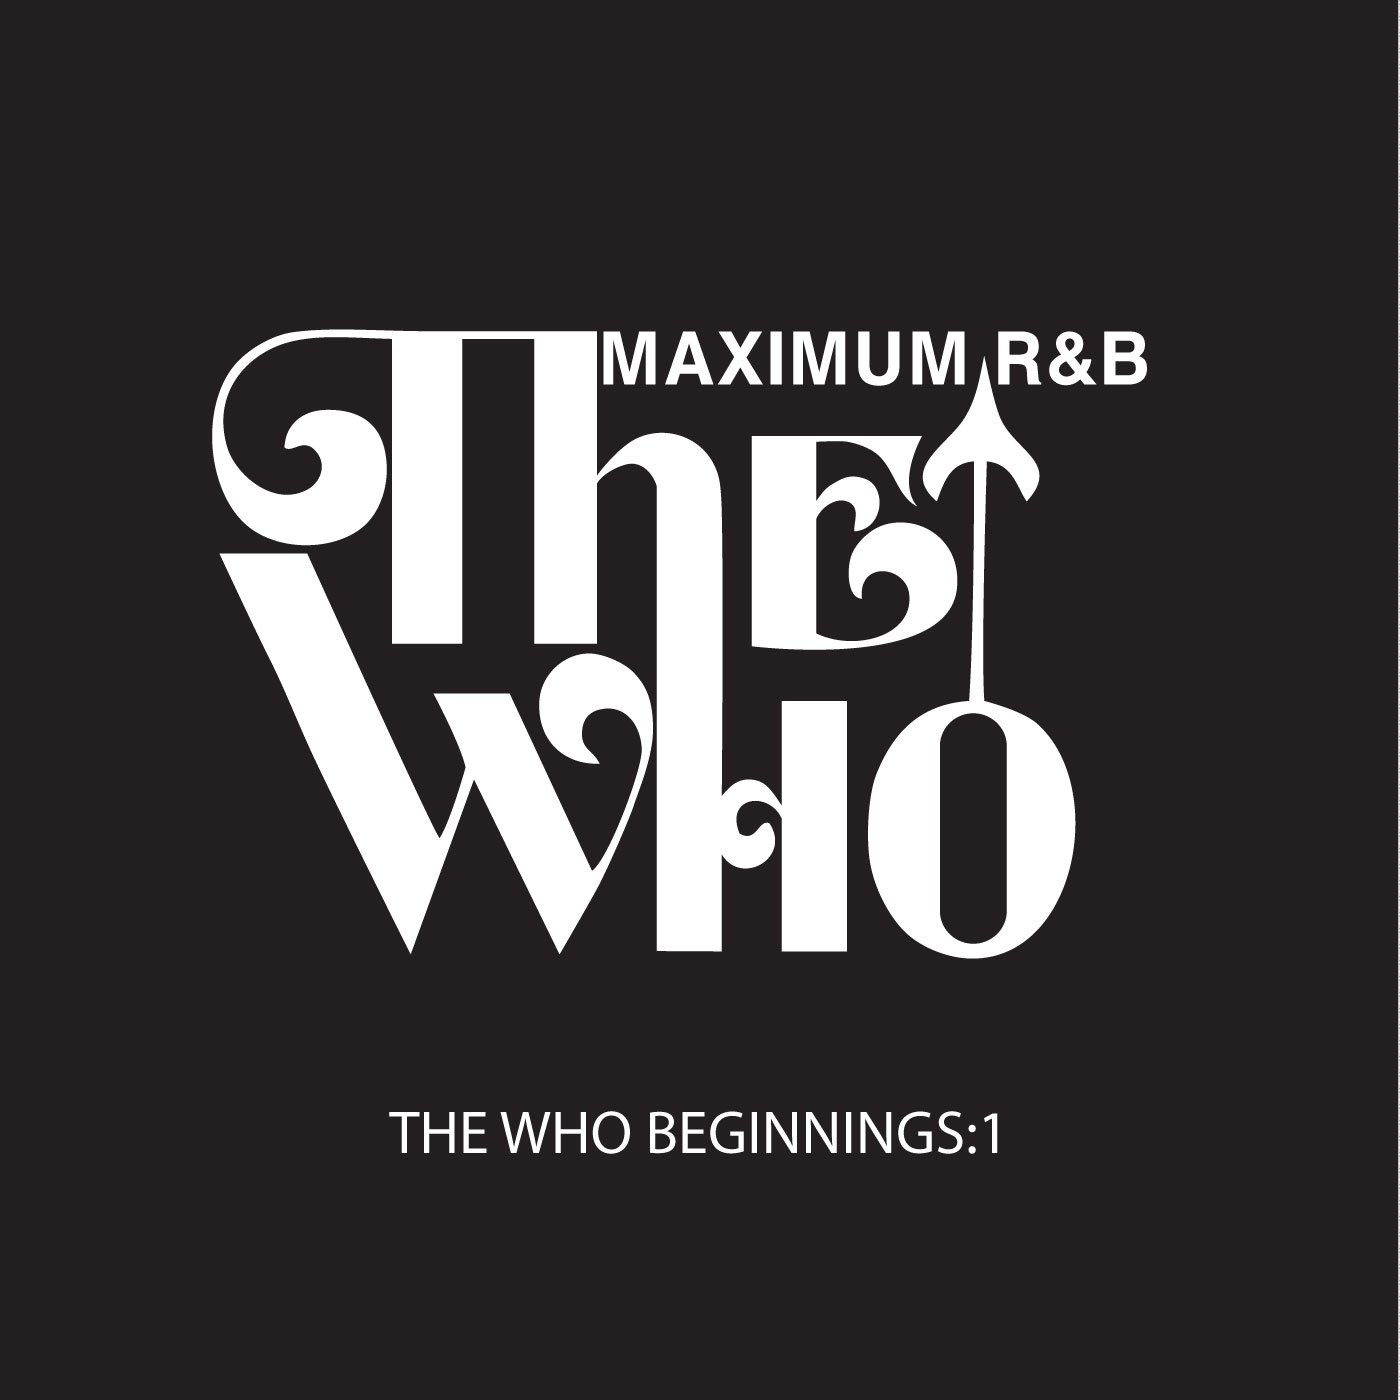 The Who Beginnings